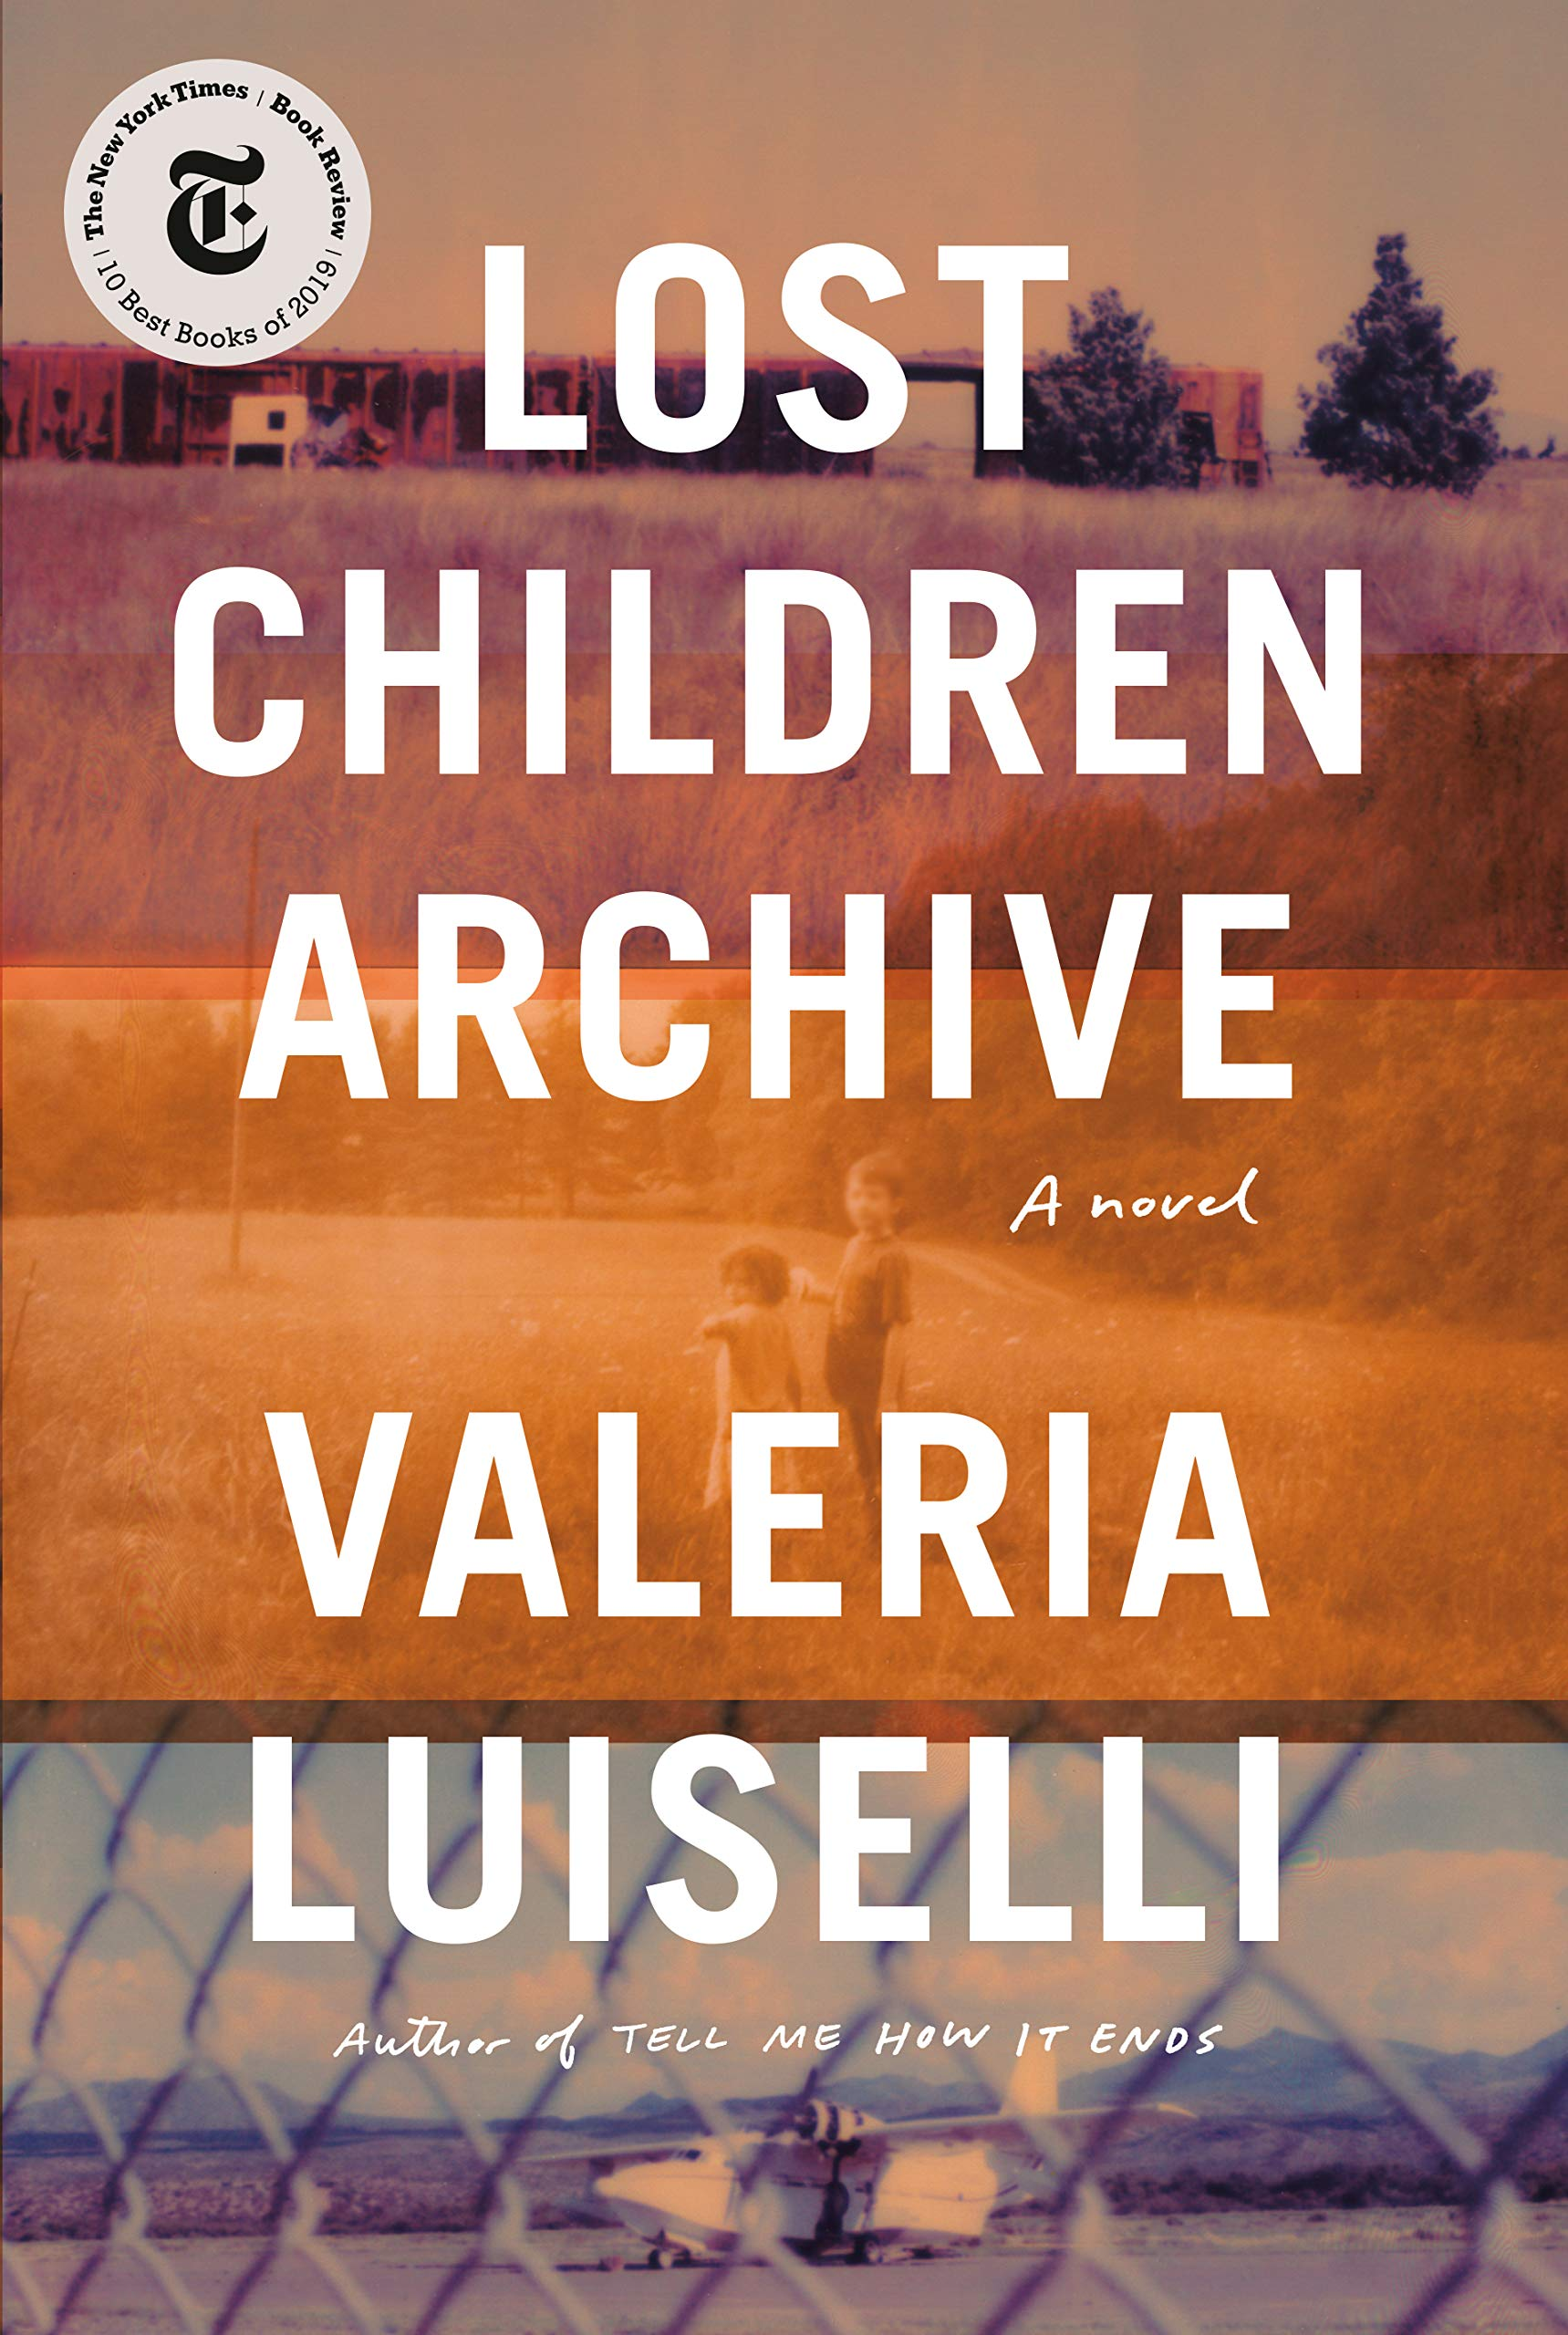 Dumbo Lit Book Club: Lost Children Archive by Valeria Luiselli